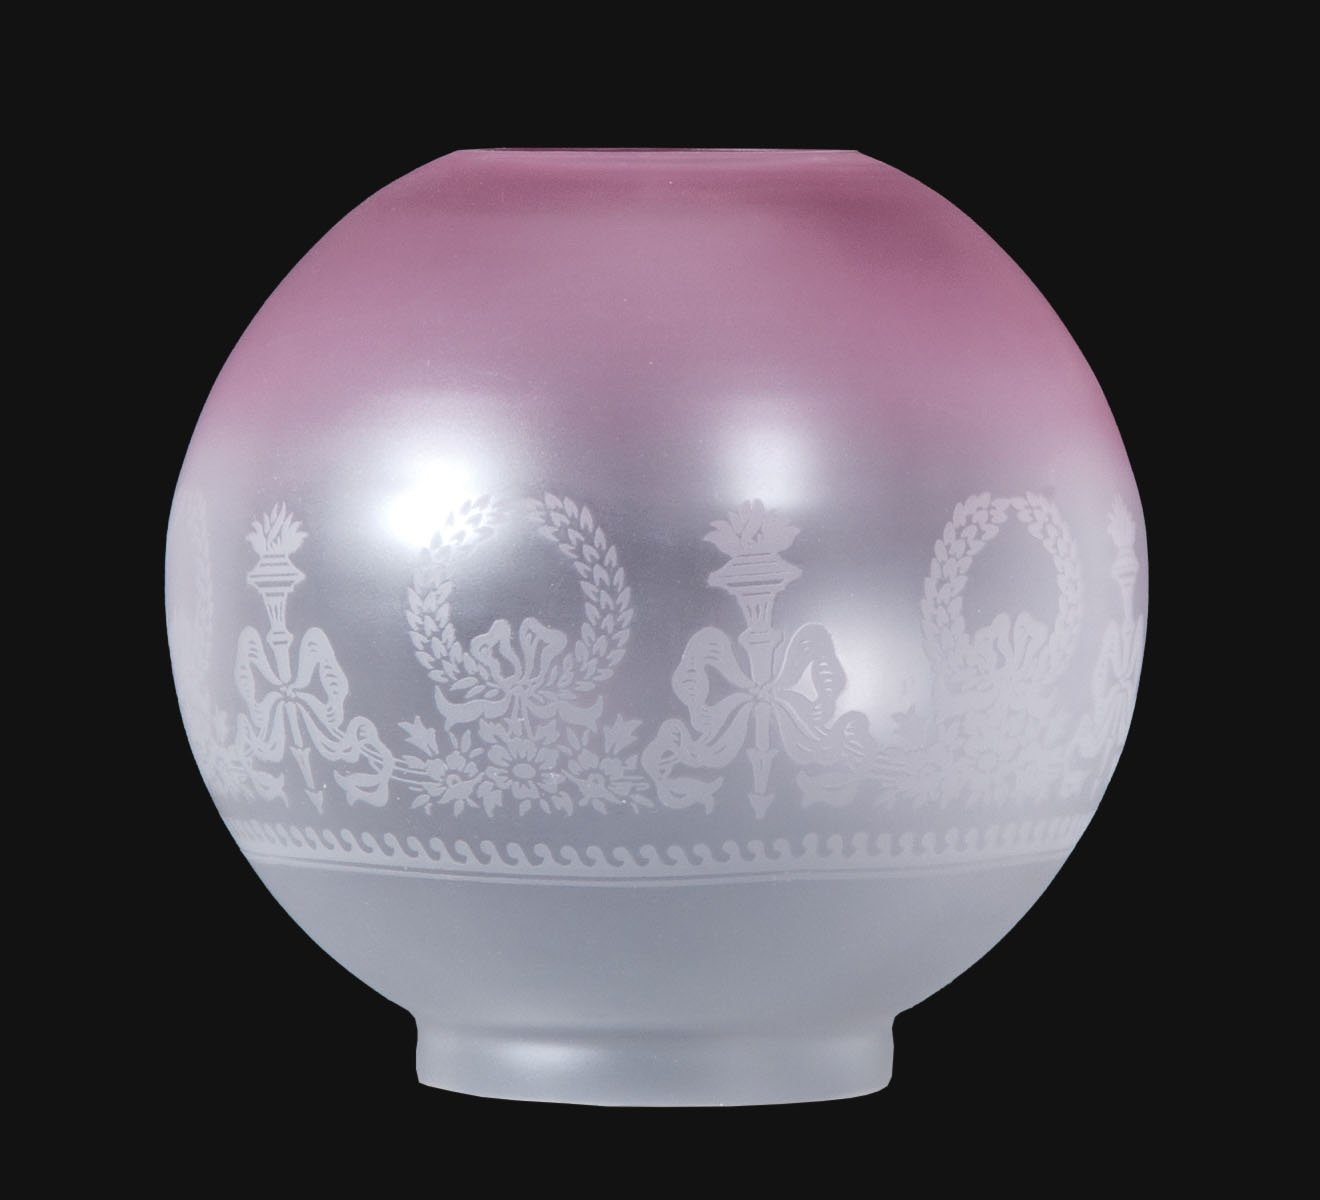 B&P Lamp 8'' Bows and Wreaths Shade Satin Etched Shade, Ruby Tint